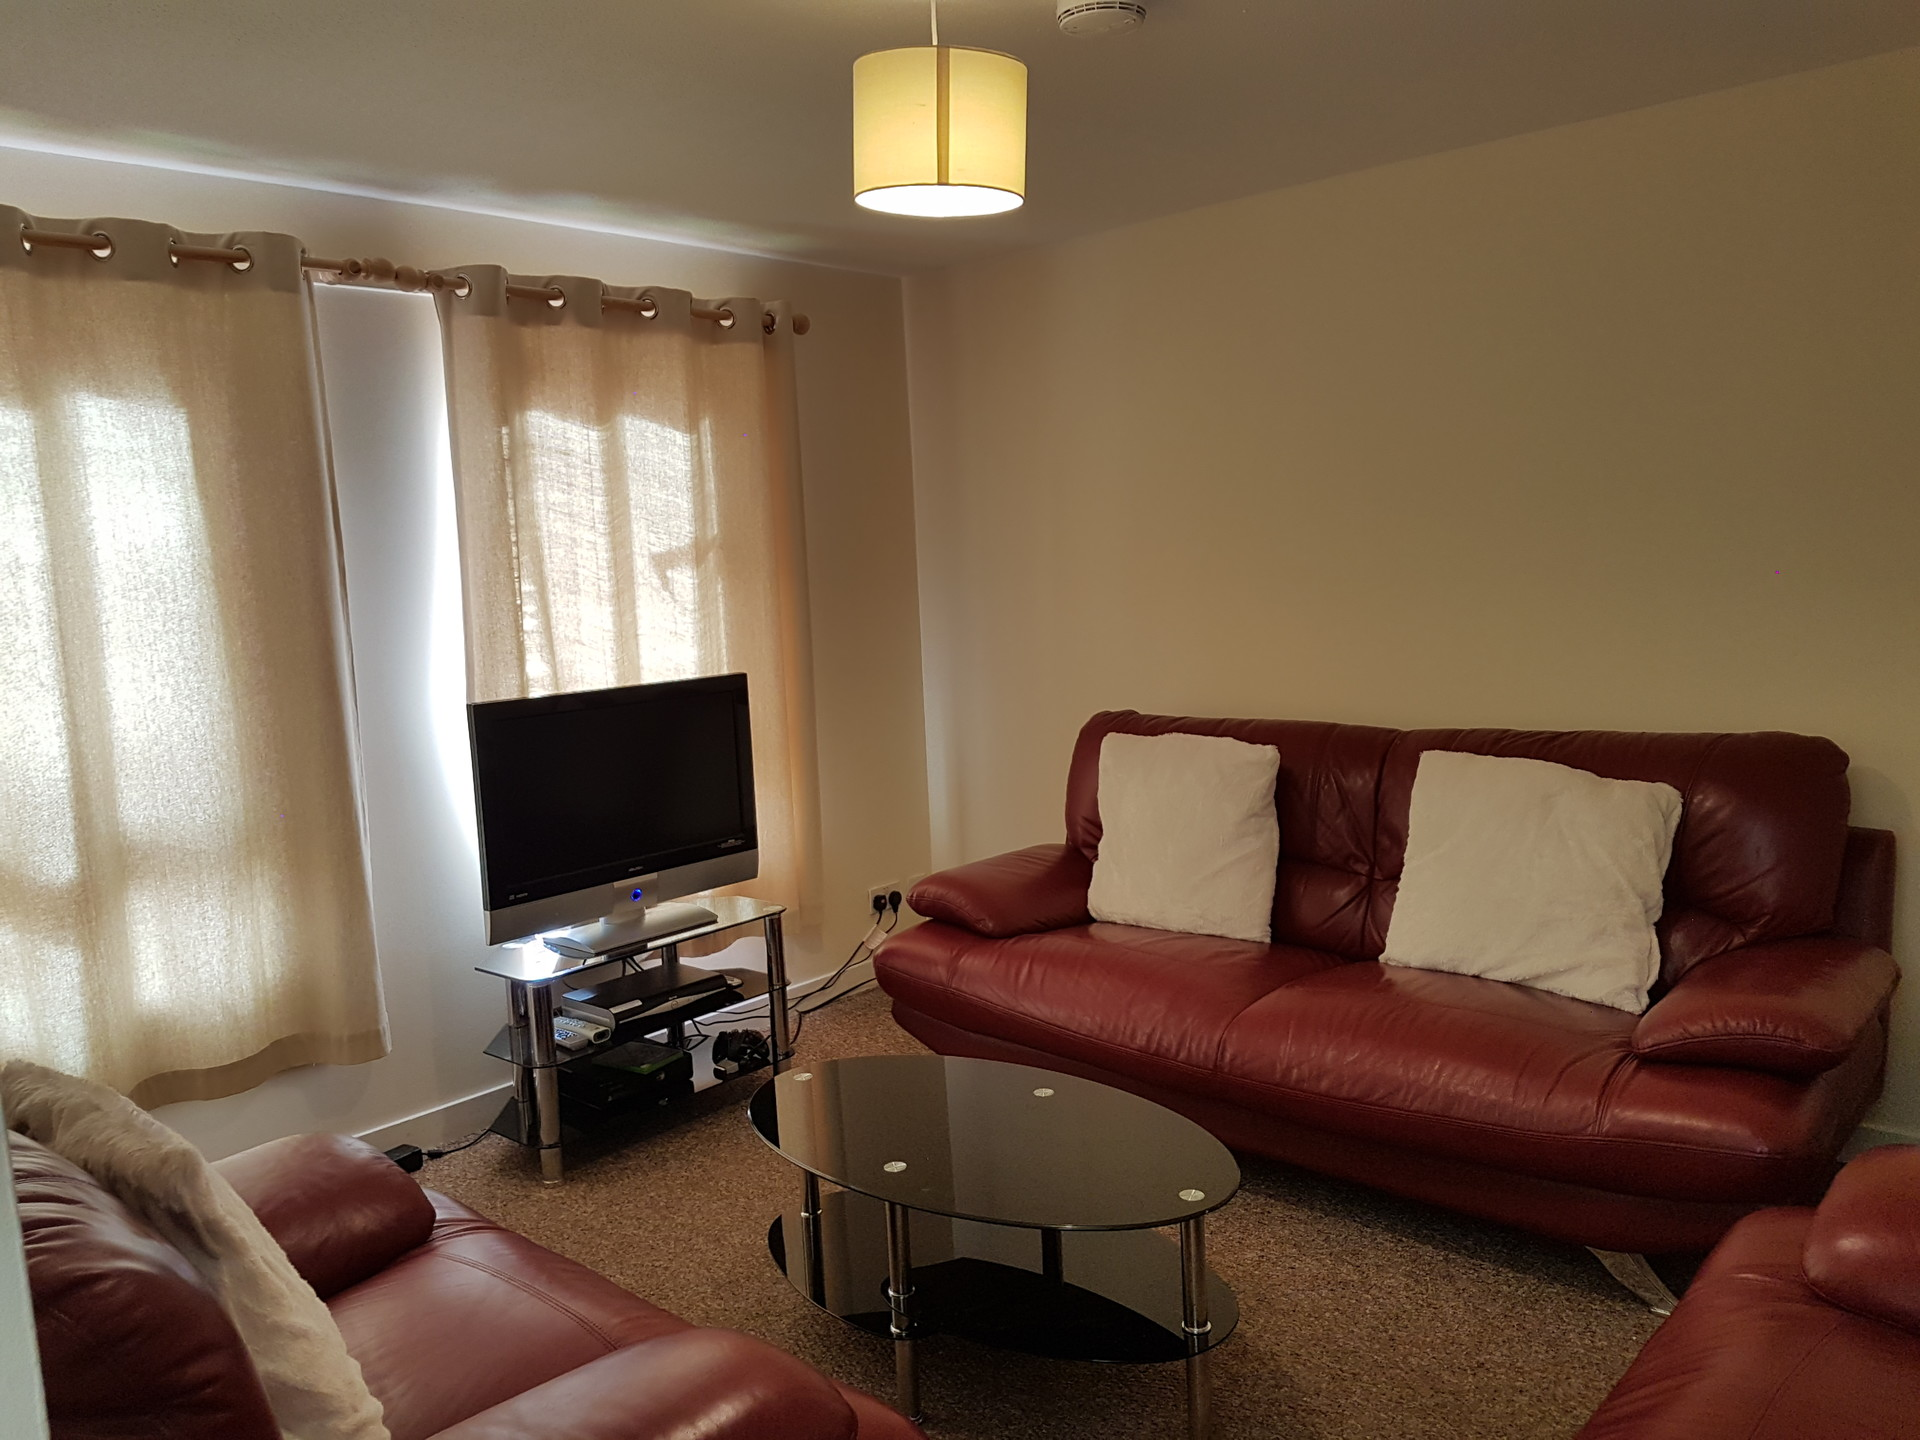 Rooms: Double Room In Shared 2 Bed Flat Near The City Centre And